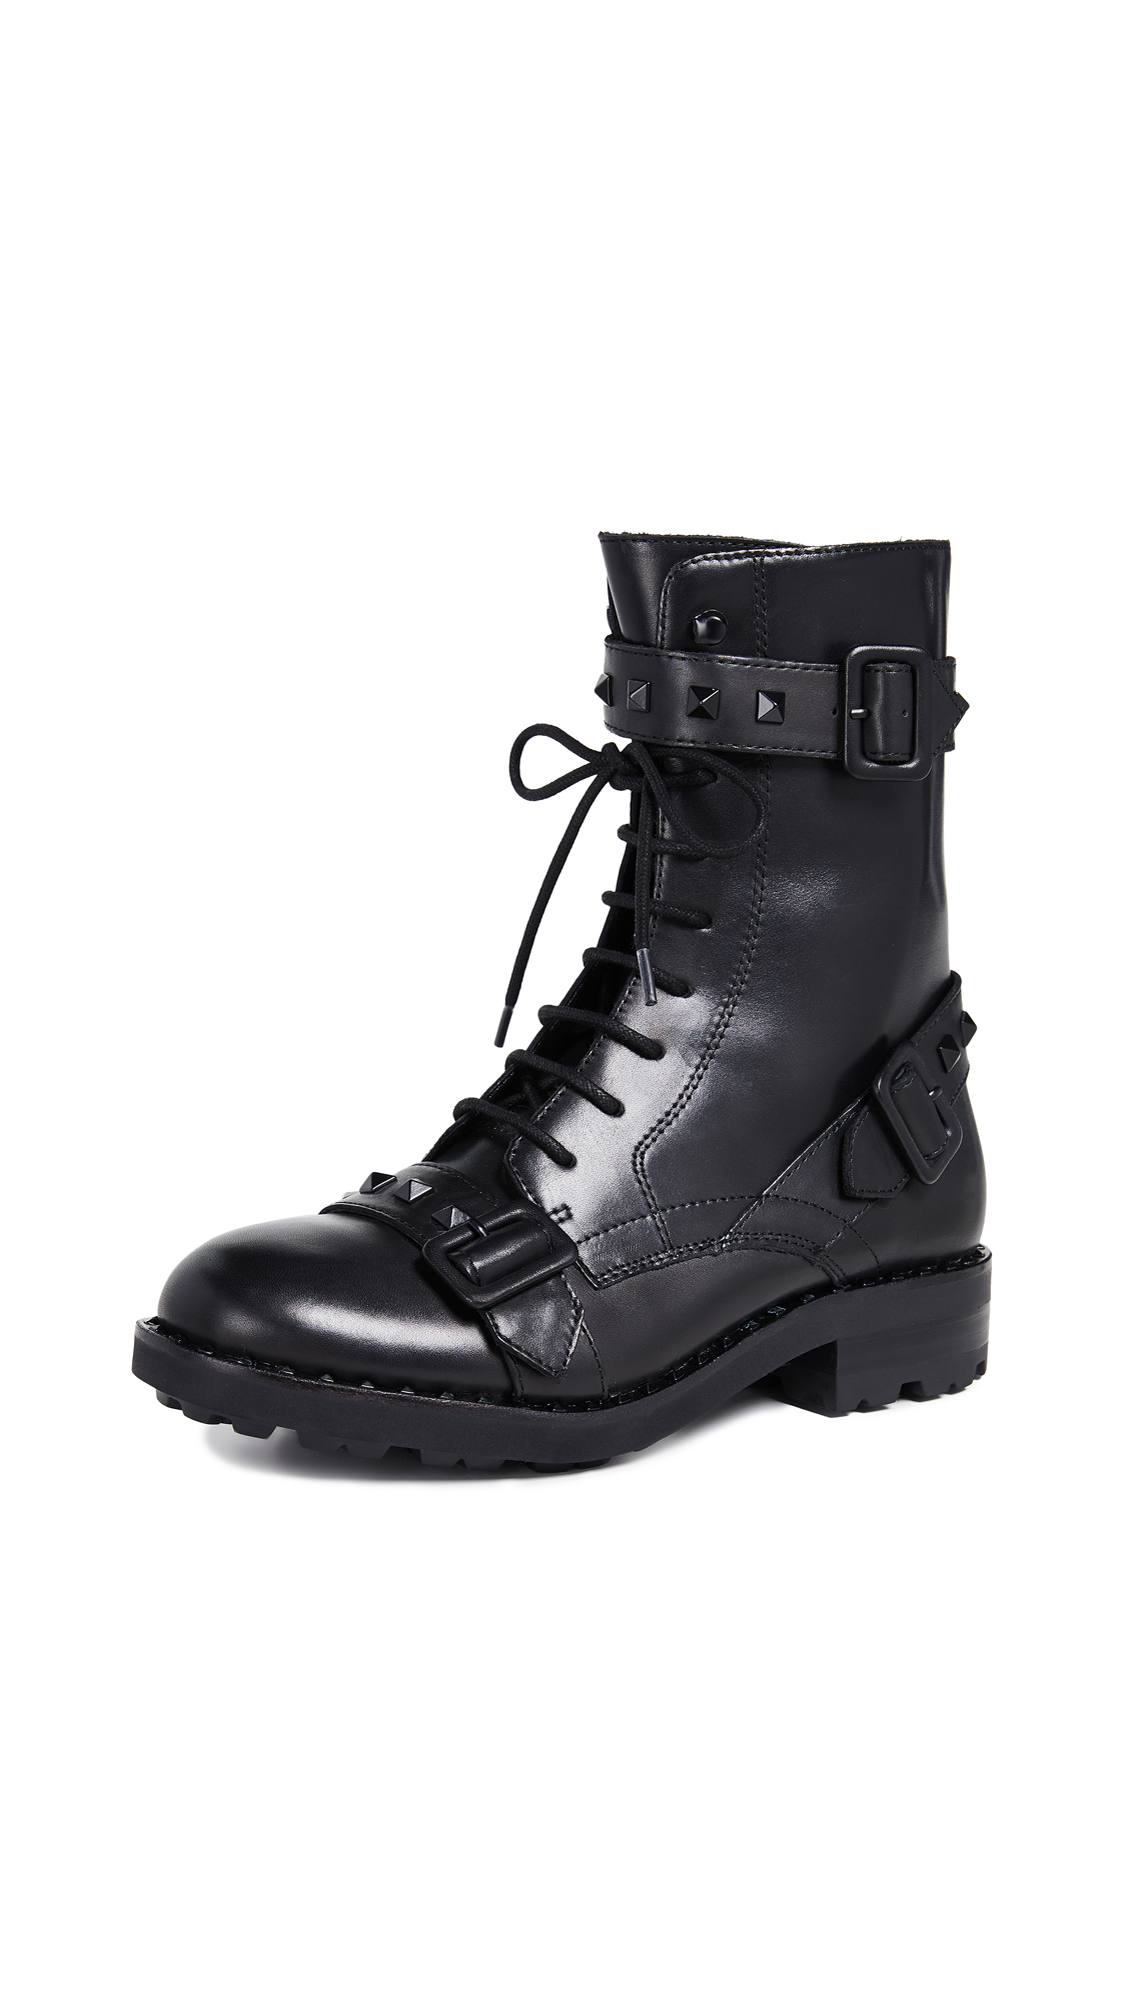 Ash Witch Combat Boots - Black/Black